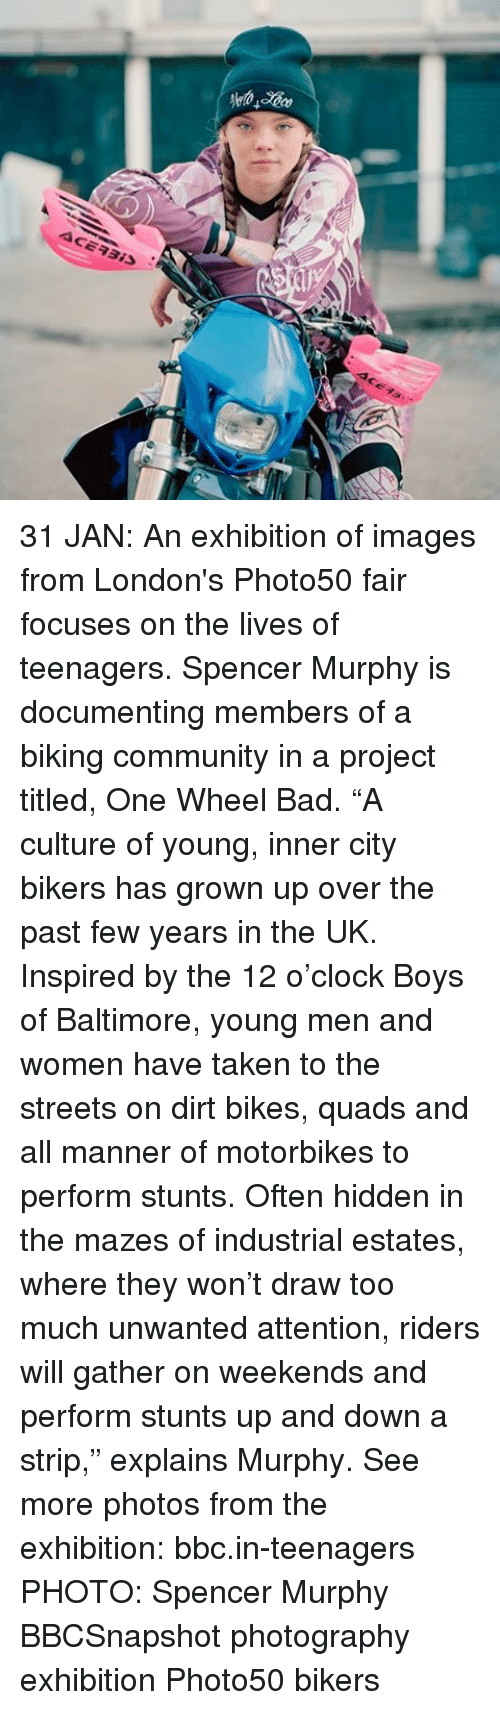 "past-few-years: ACEAais 31 JAN: An exhibition of images from London's Photo50 fair focuses on the lives of teenagers. Spencer Murphy is documenting members of a biking community in a project titled, One Wheel Bad. ""A culture of young, inner city bikers has grown up over the past few years in the UK. Inspired by the 12 o'clock Boys of Baltimore, young men and women have taken to the streets on dirt bikes, quads and all manner of motorbikes to perform stunts. Often hidden in the mazes of industrial estates, where they won't draw too much unwanted attention, riders will gather on weekends and perform stunts up and down a strip,"" explains Murphy. See more photos from the exhibition: bbc.in-teenagers PHOTO: Spencer Murphy BBCSnapshot photography exhibition Photo50 bikers"